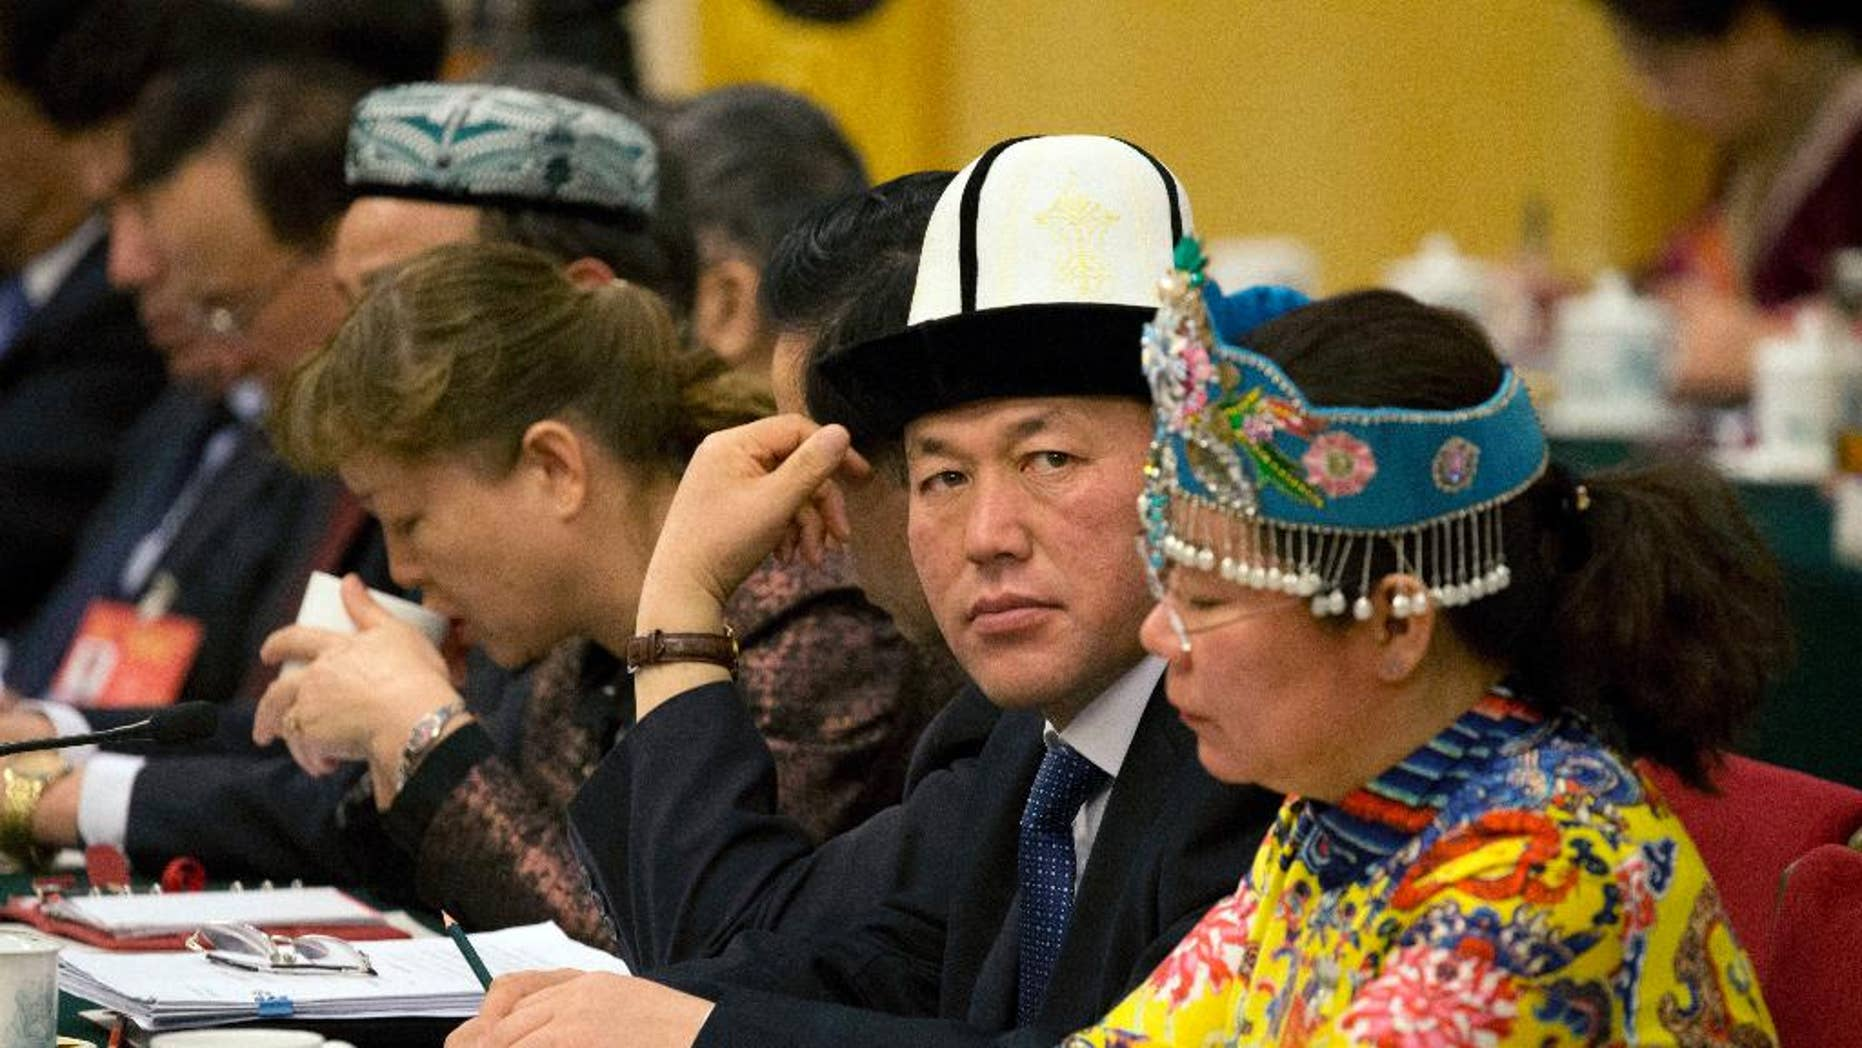 Delegates from Xinjiang meet in the Xinjiang Hall of the Great Hall of the People on the sideline of the National People's Congress in Beijing, China, Sunday, March 12, 2017. China's ruling Communist Party is hardening its rhetoric about Islam, with top officials making repeated warnings this past week about the specter of global religious extremism seeping into the country. (AP Photo/Ng Han Guan)